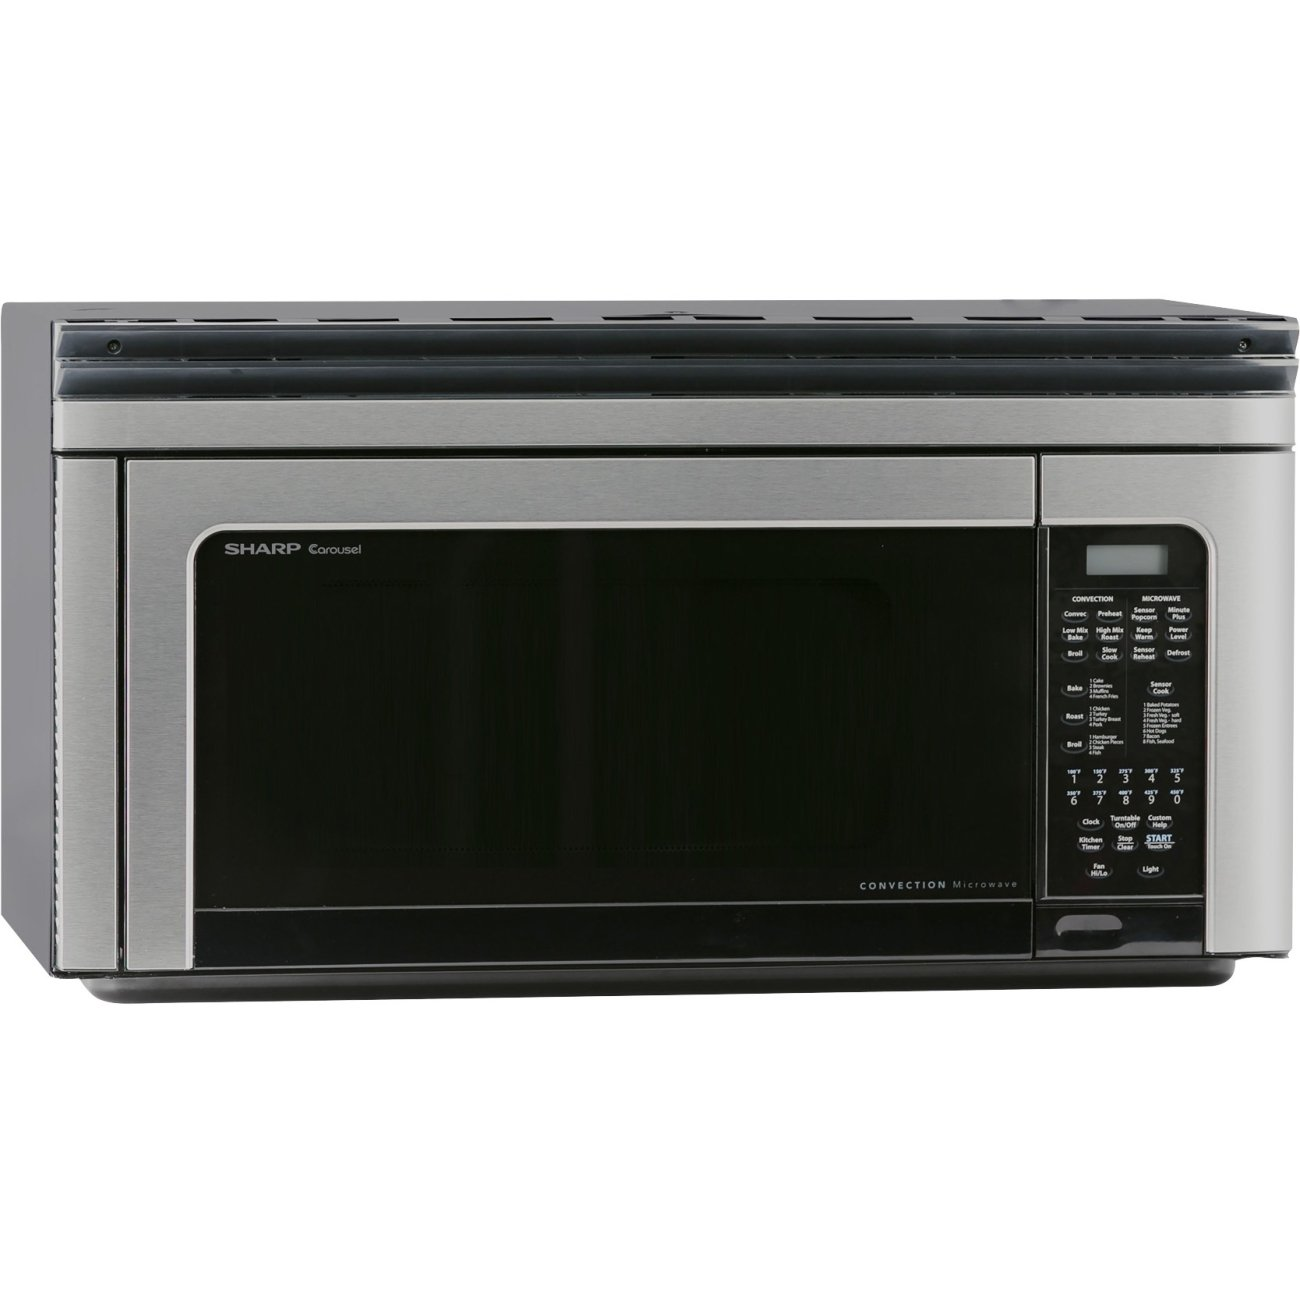 Sharp R-1881LSY 30'' Over-the-Range Convection Microwave Oven with 1.1 cu. ft. Capacity 13'' Turntable 8 Sensor Cook Options and 850 Watts Output in Stainless